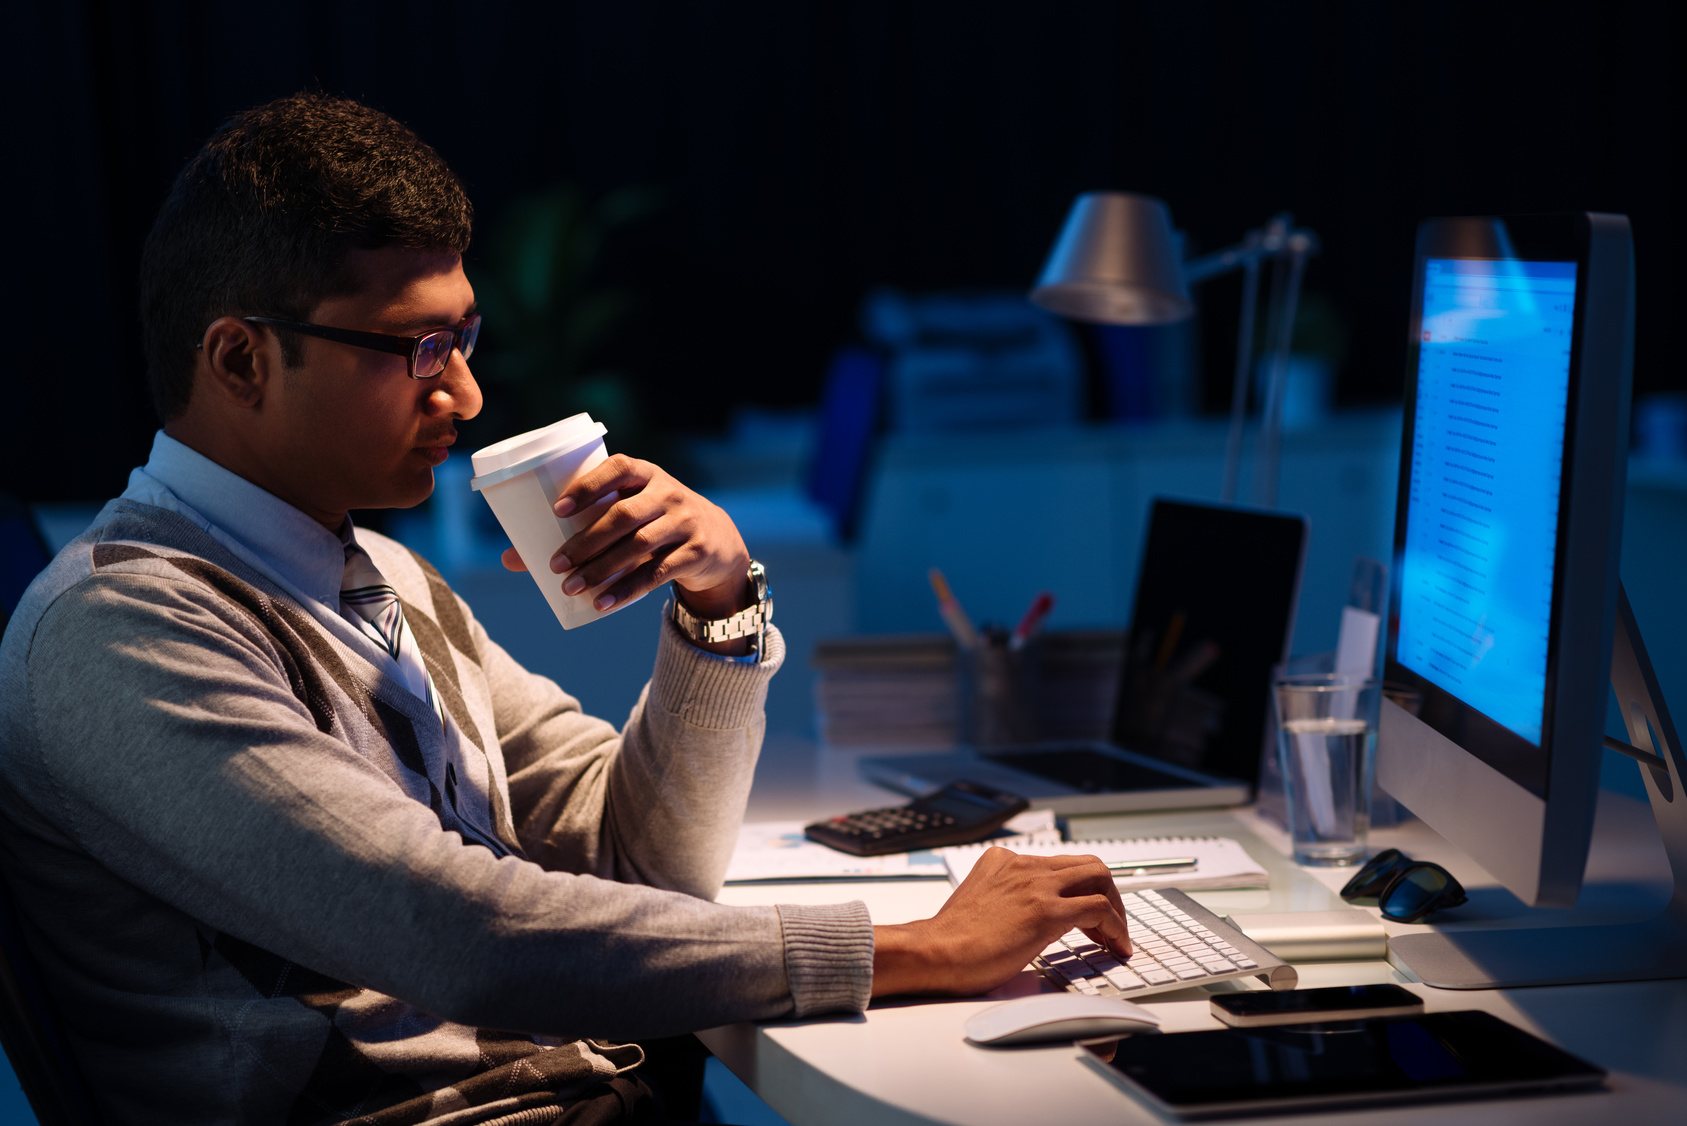 Programmer drinking coffee and computing at night, side view